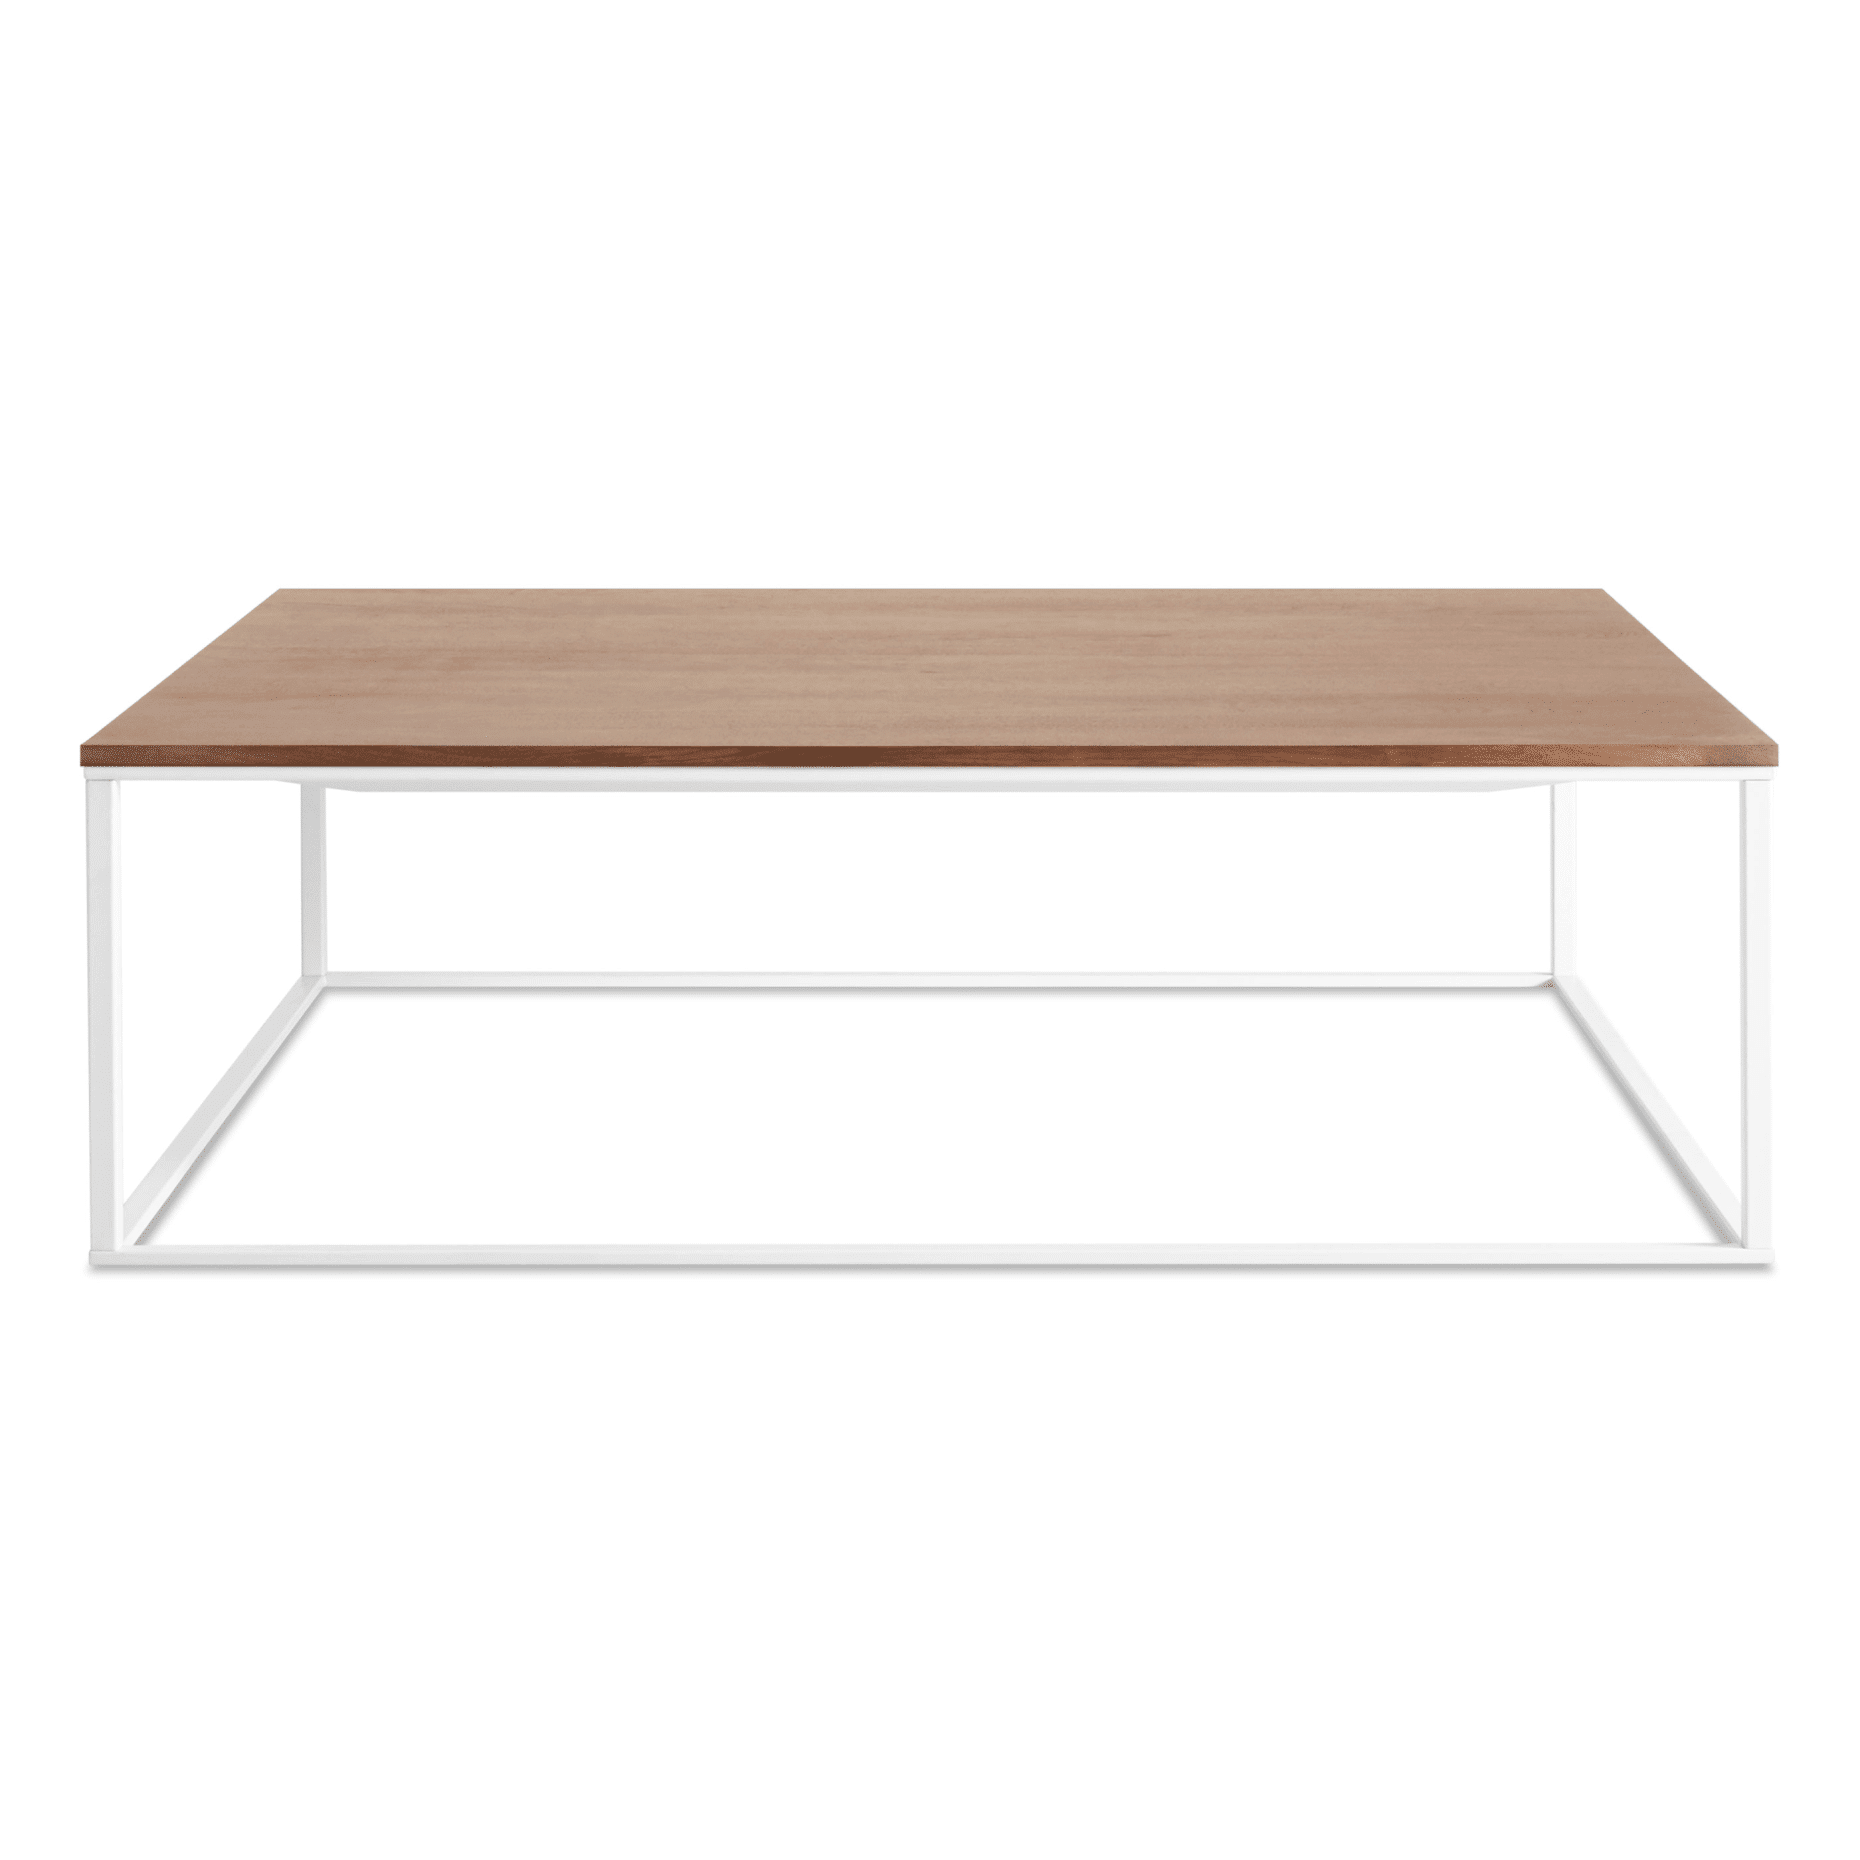 mn1 sqcfwh wl minimalista square coffee table white walnut